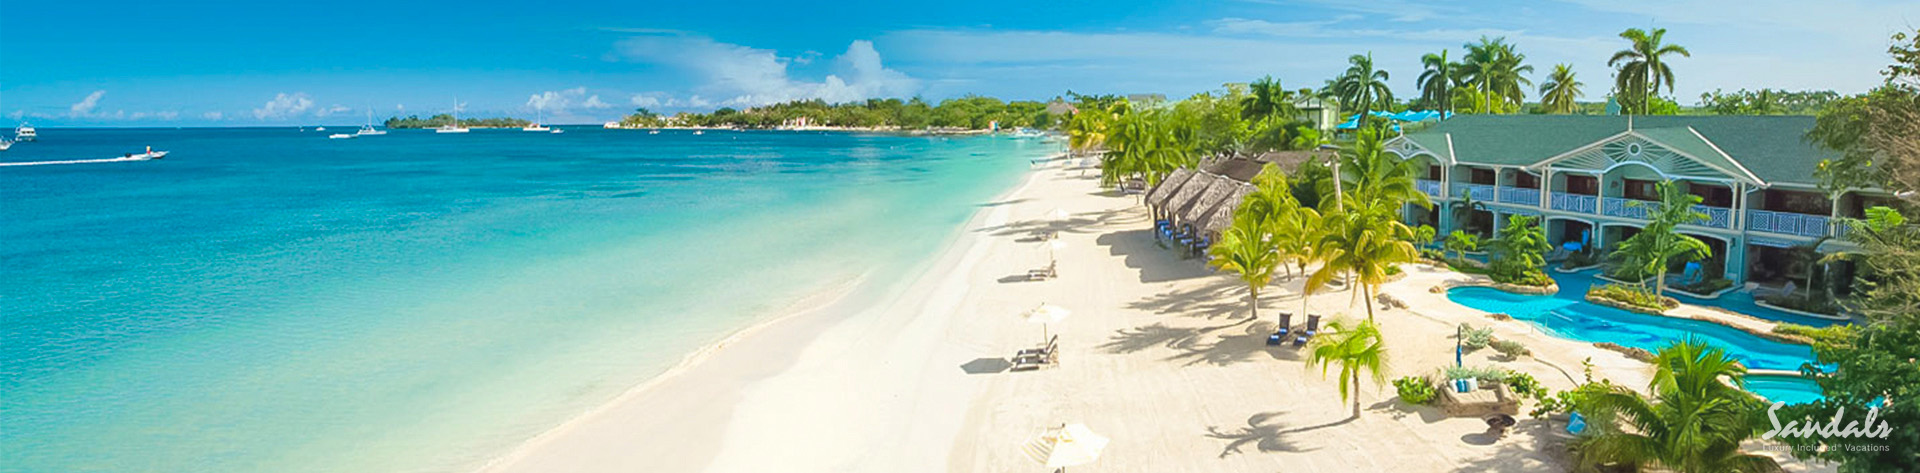 sandals negril caribbean beach vacation